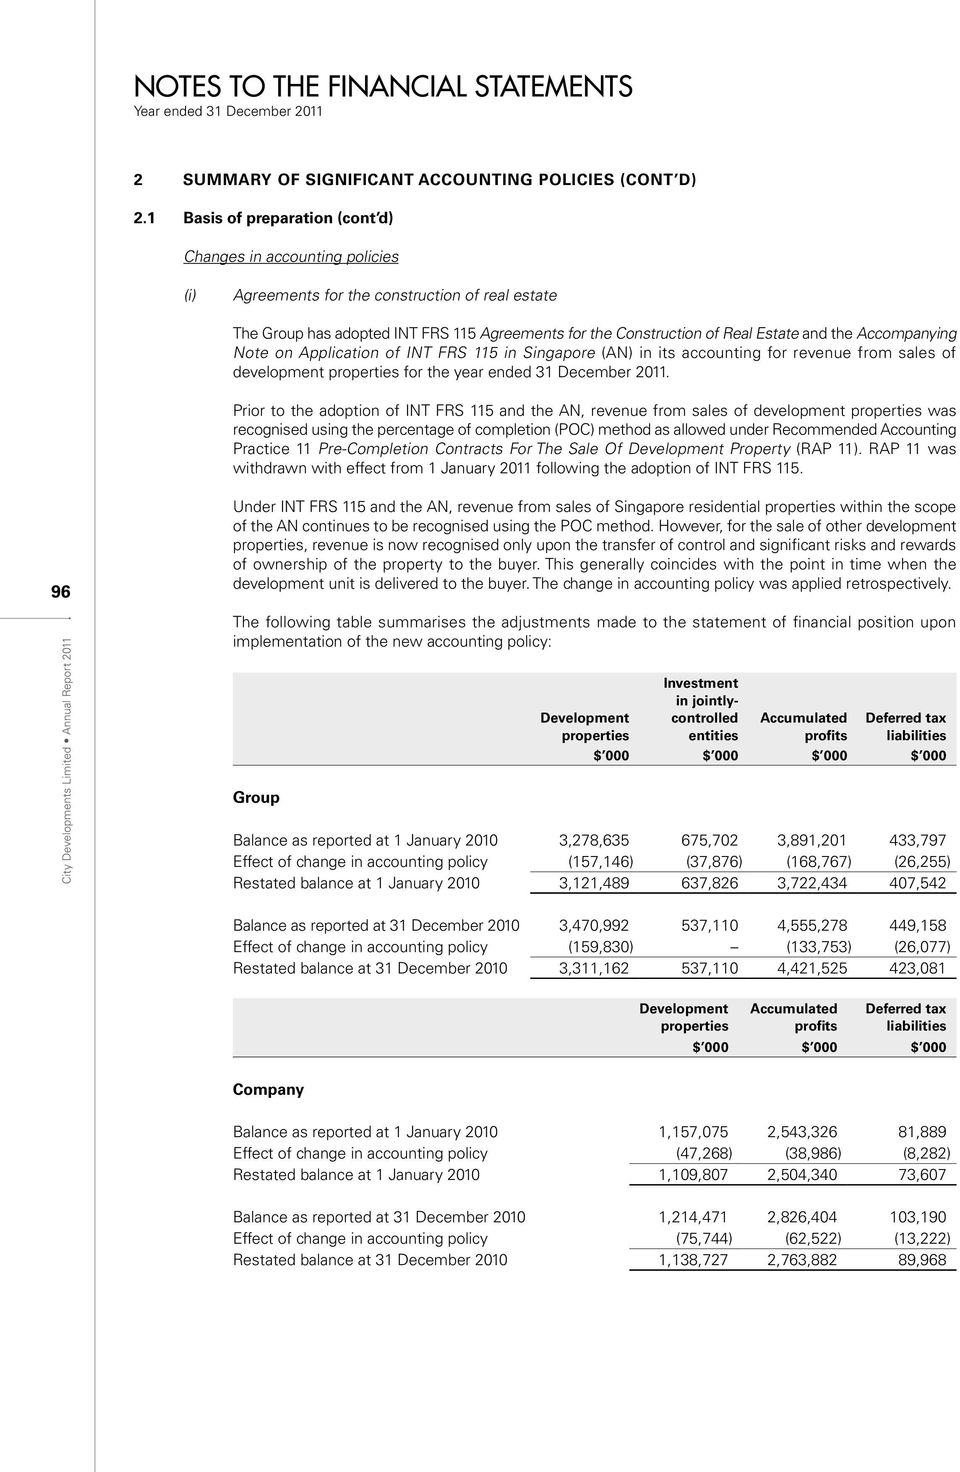 Accompanying Note on Application of INT FRS 115 in Singapore (AN) in its accounting for revenue from sales of development properties for the year ended 31 December 2011.